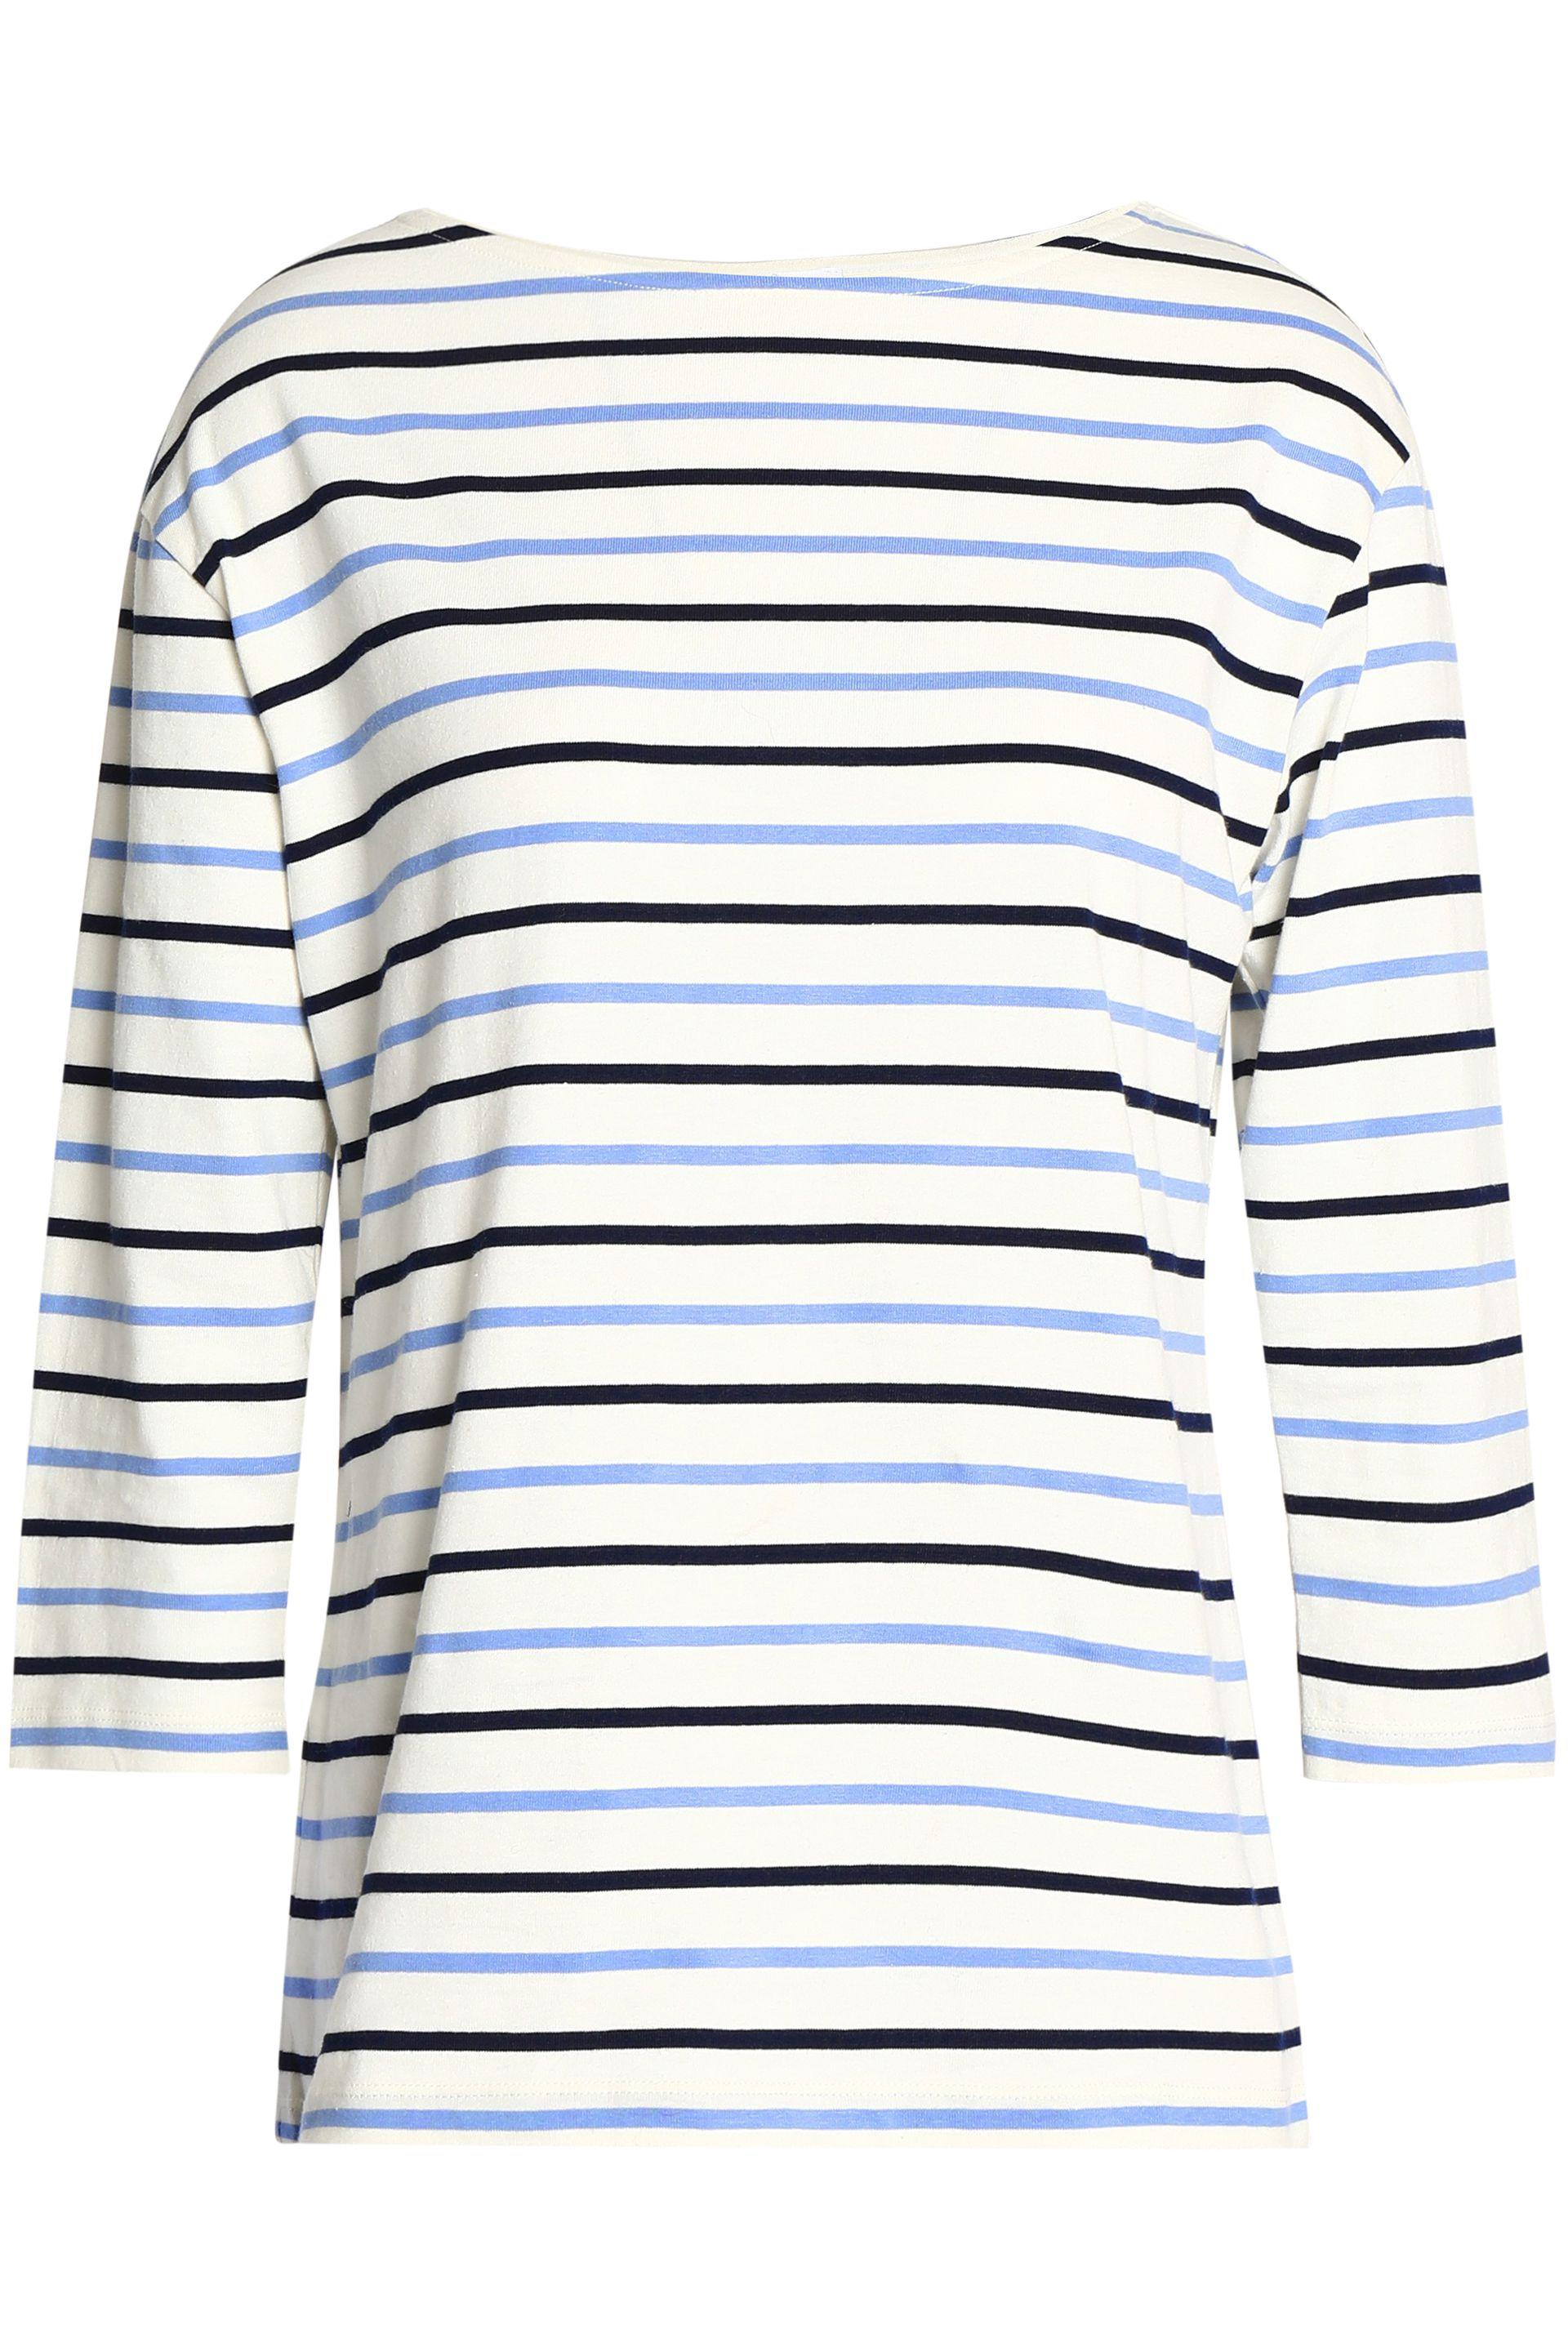 Iris & Ink Woman Sydney Striped Cotton-jersey Top Off-white Size XL IRIS & INK Clearance Latest Collections For Cheap Discount Genuine For Sale Free Shipping Cheap Quality YccVXVgP10